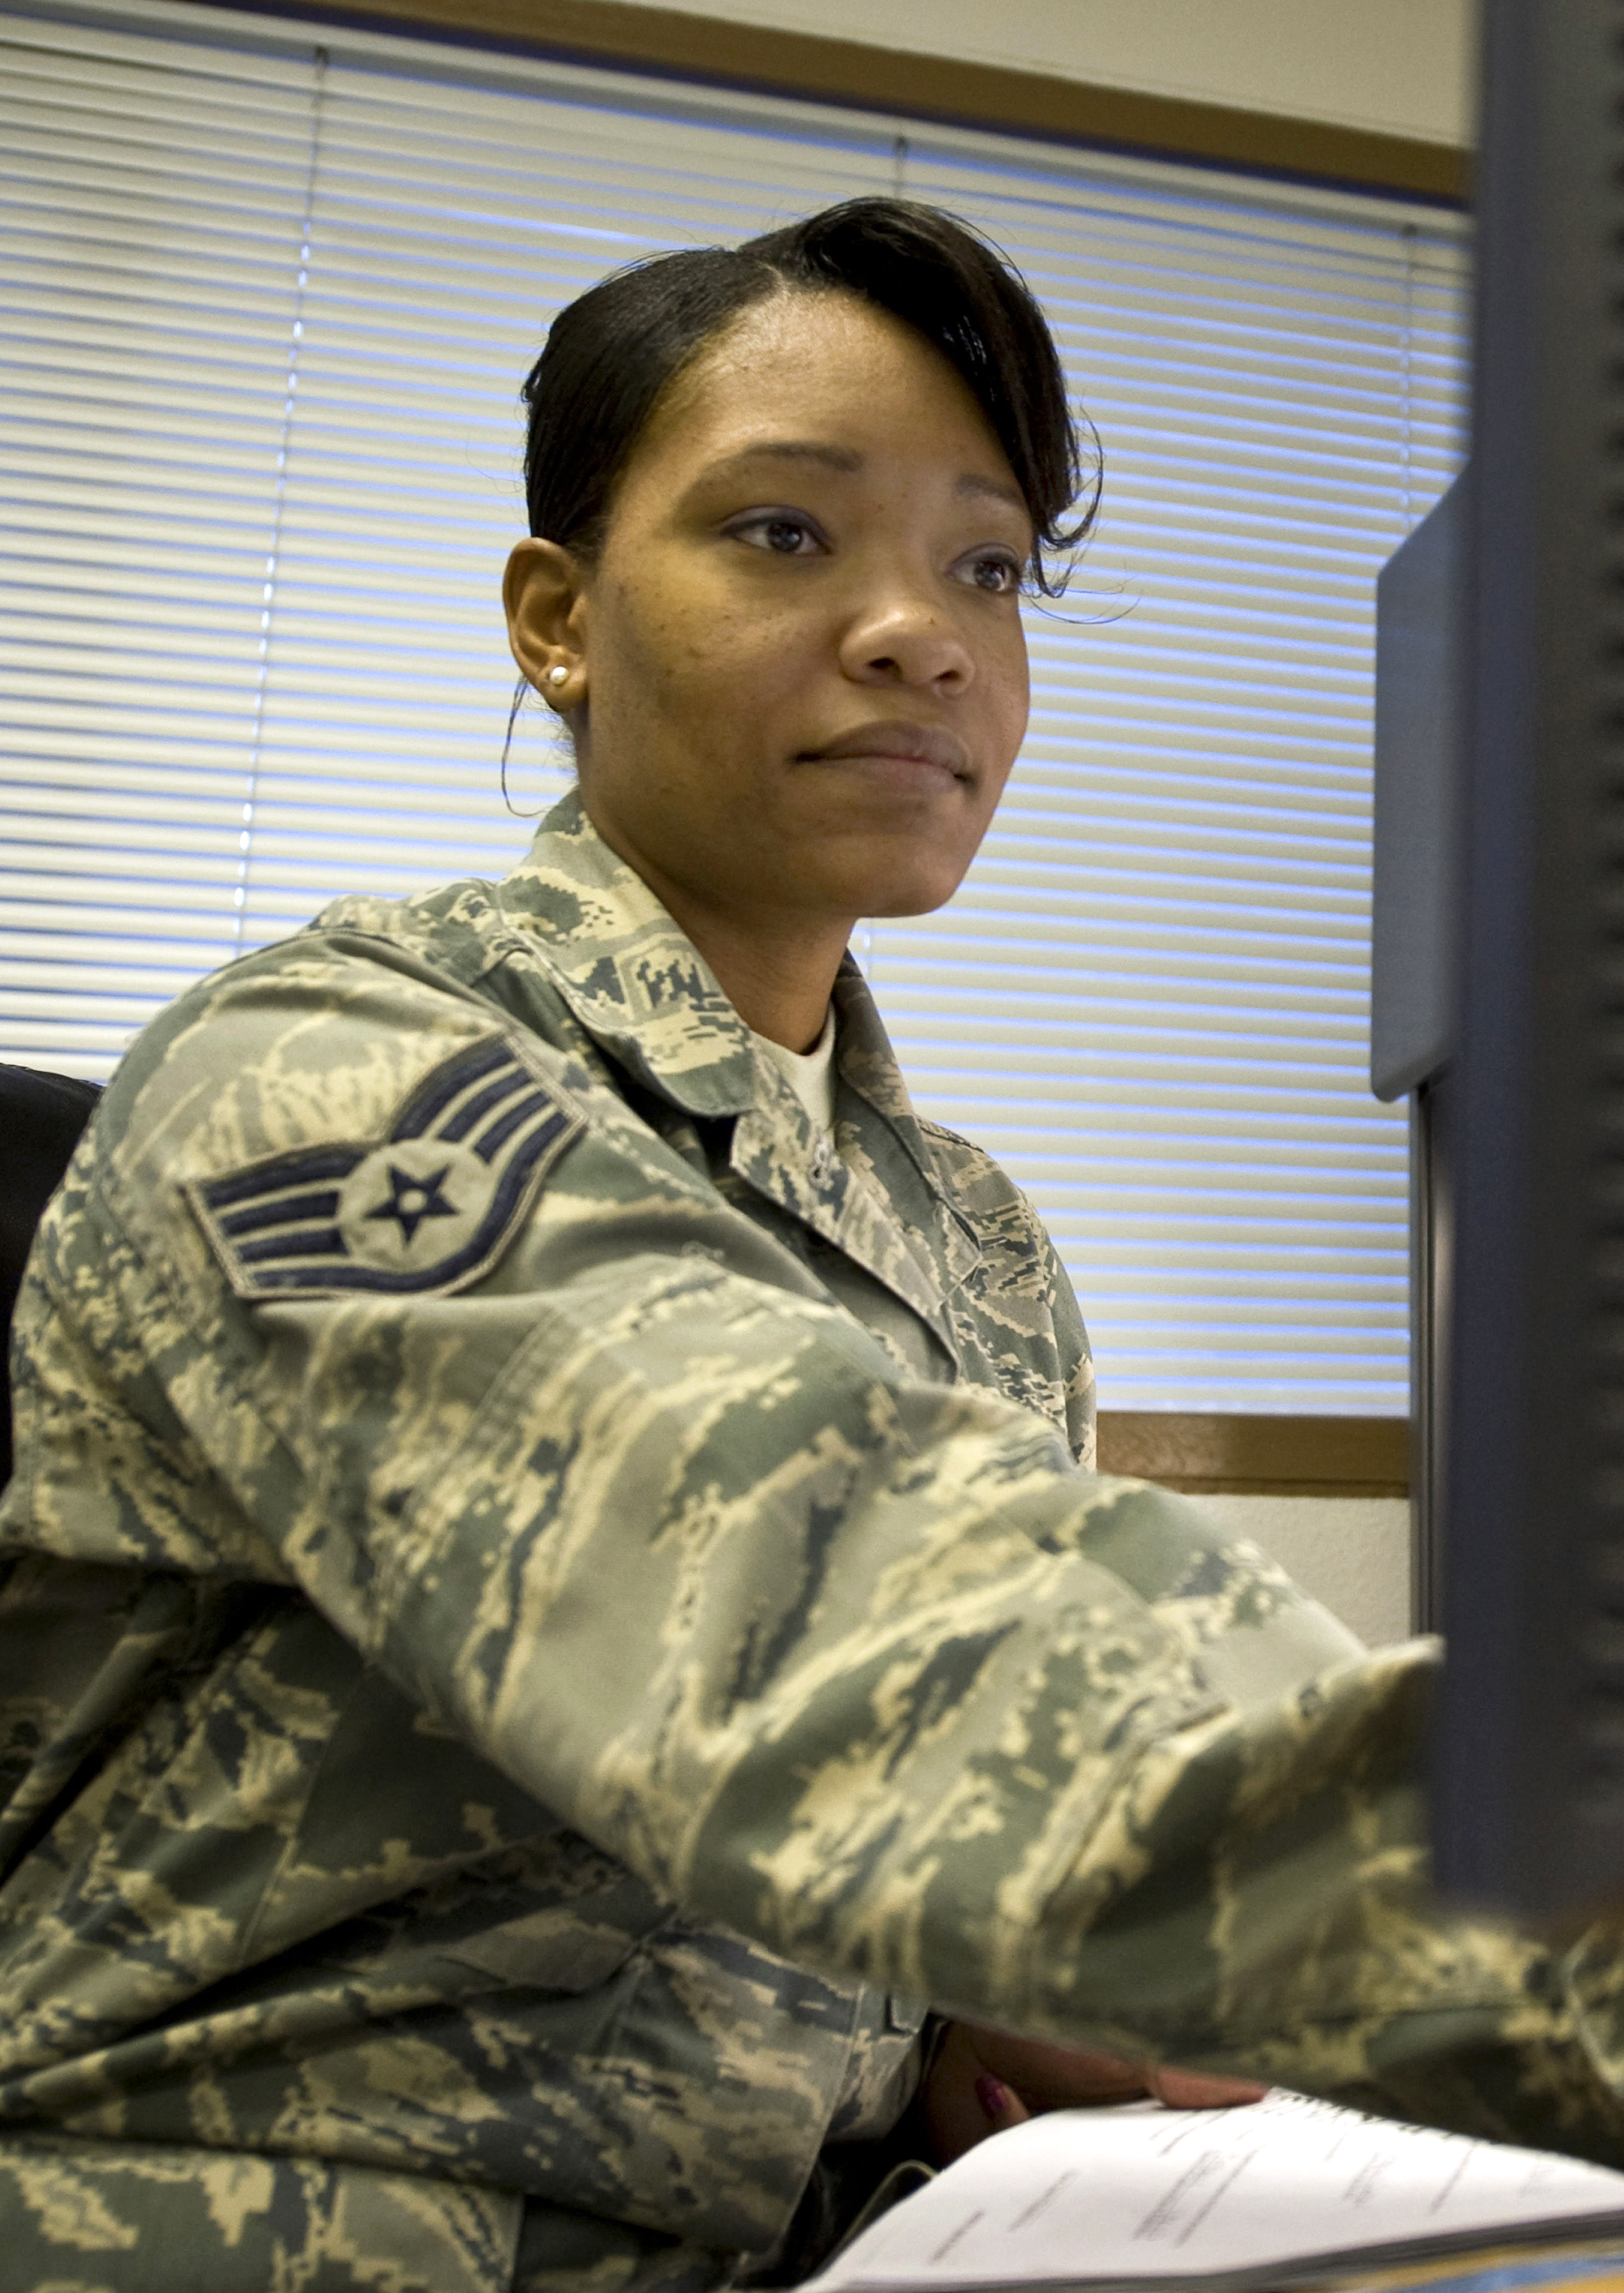 should women be in combat essay Defense secretary ashton b carter announced the decision to open all combat jobs in the united states military to women at a news conference on thursday.